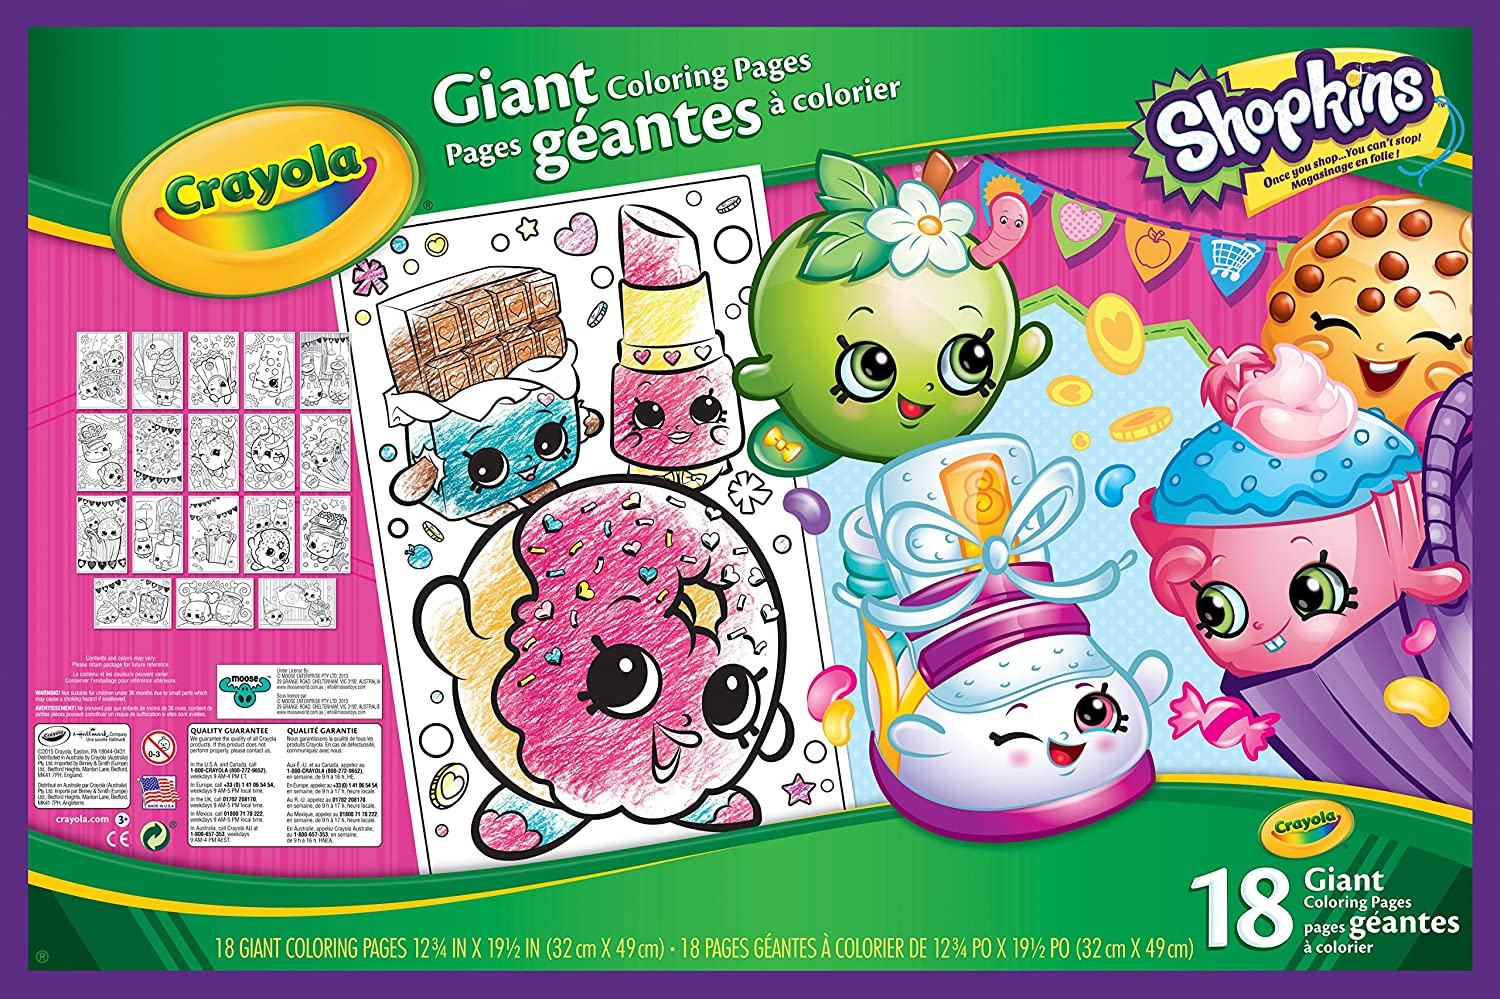 Shopkins coloring pages games - Shopkins Coloring Pages Games 38